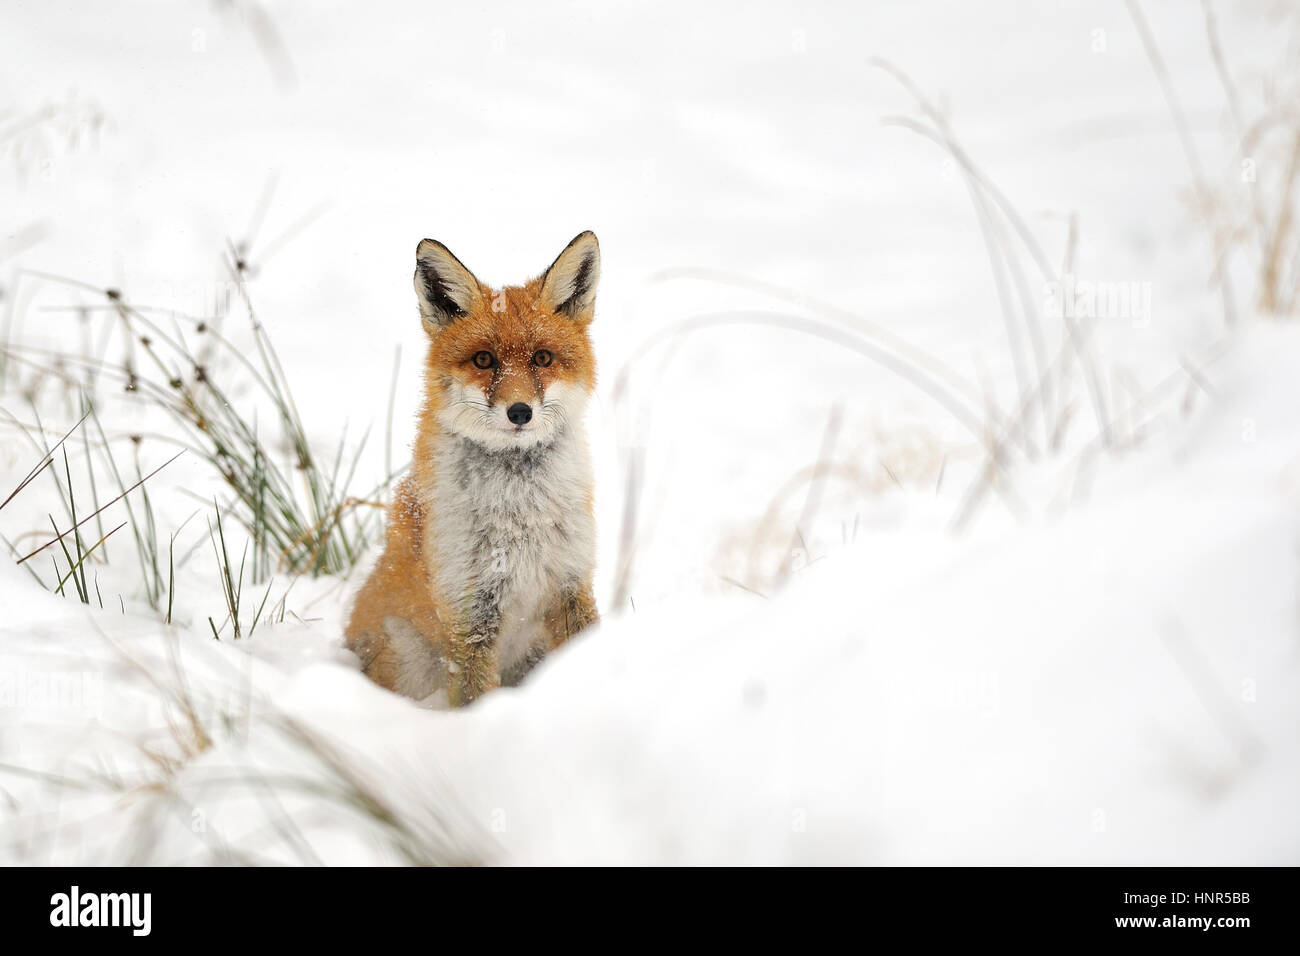 Red fox in the winter on snowy ground - Stock Image